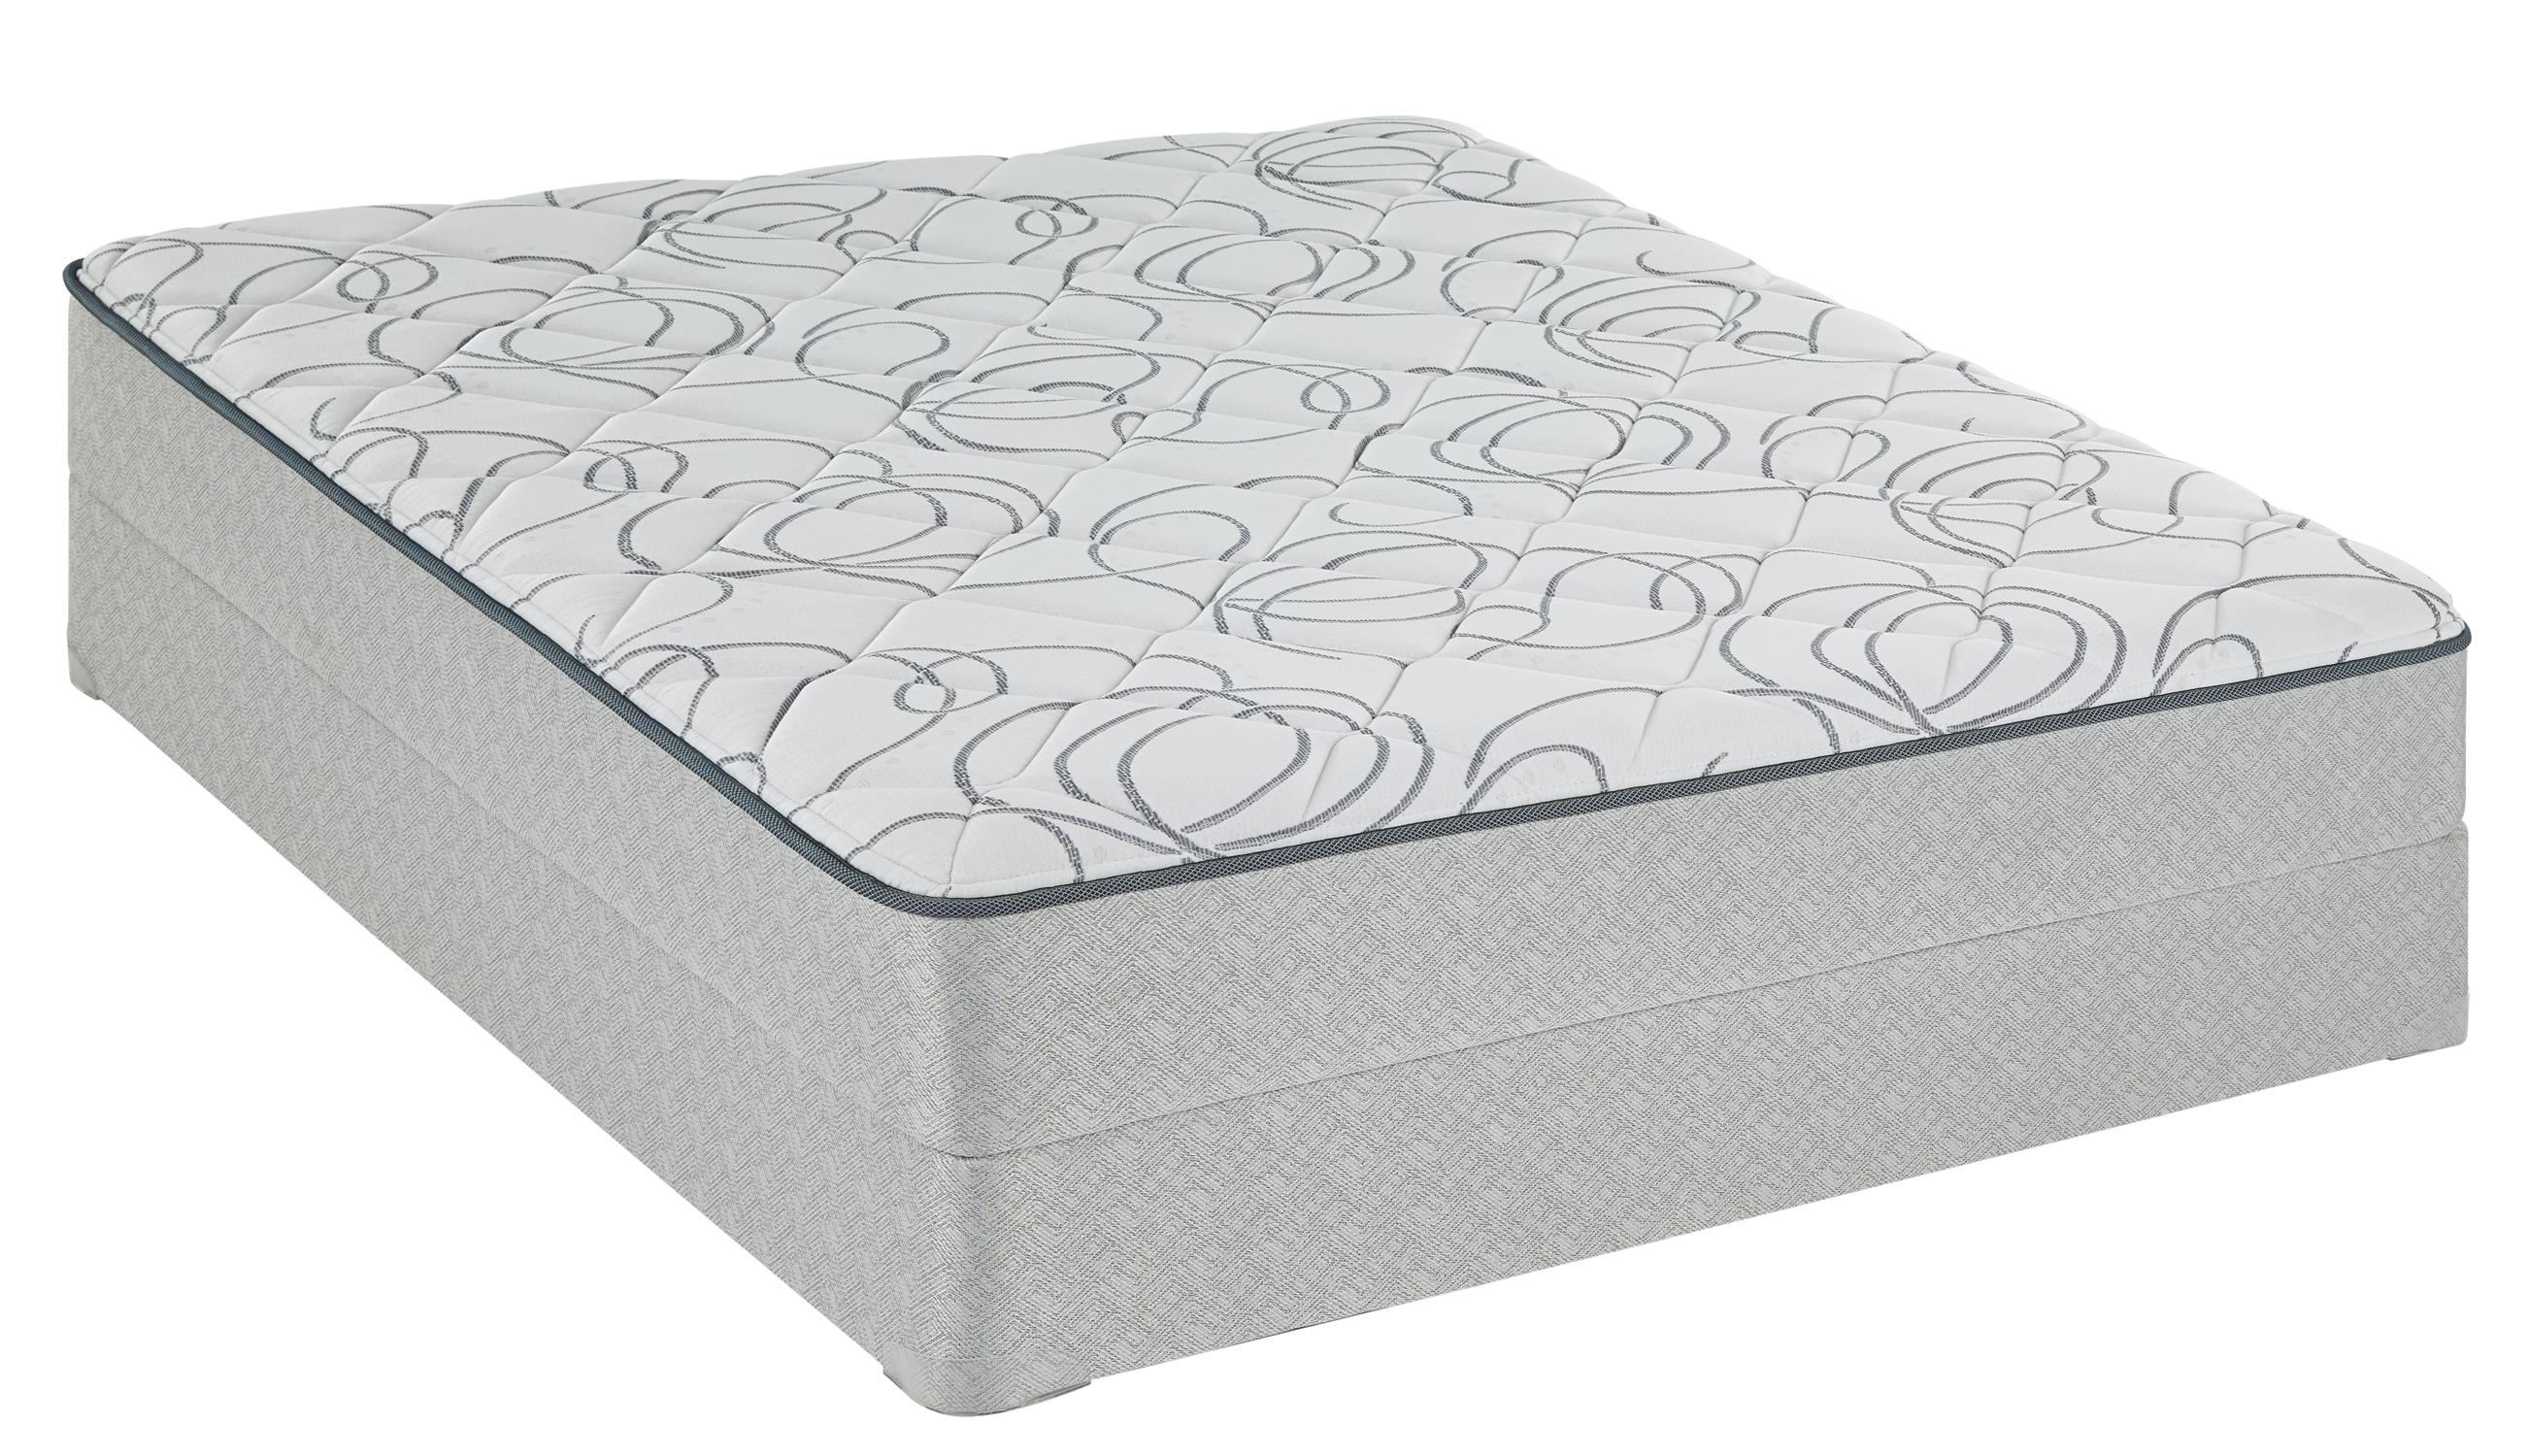 Sealy Sealy Brand Charwood Twin XL Firm Mattress Low Profile Set - Item Number: Firm-TXL+SBLPbox-TXLK